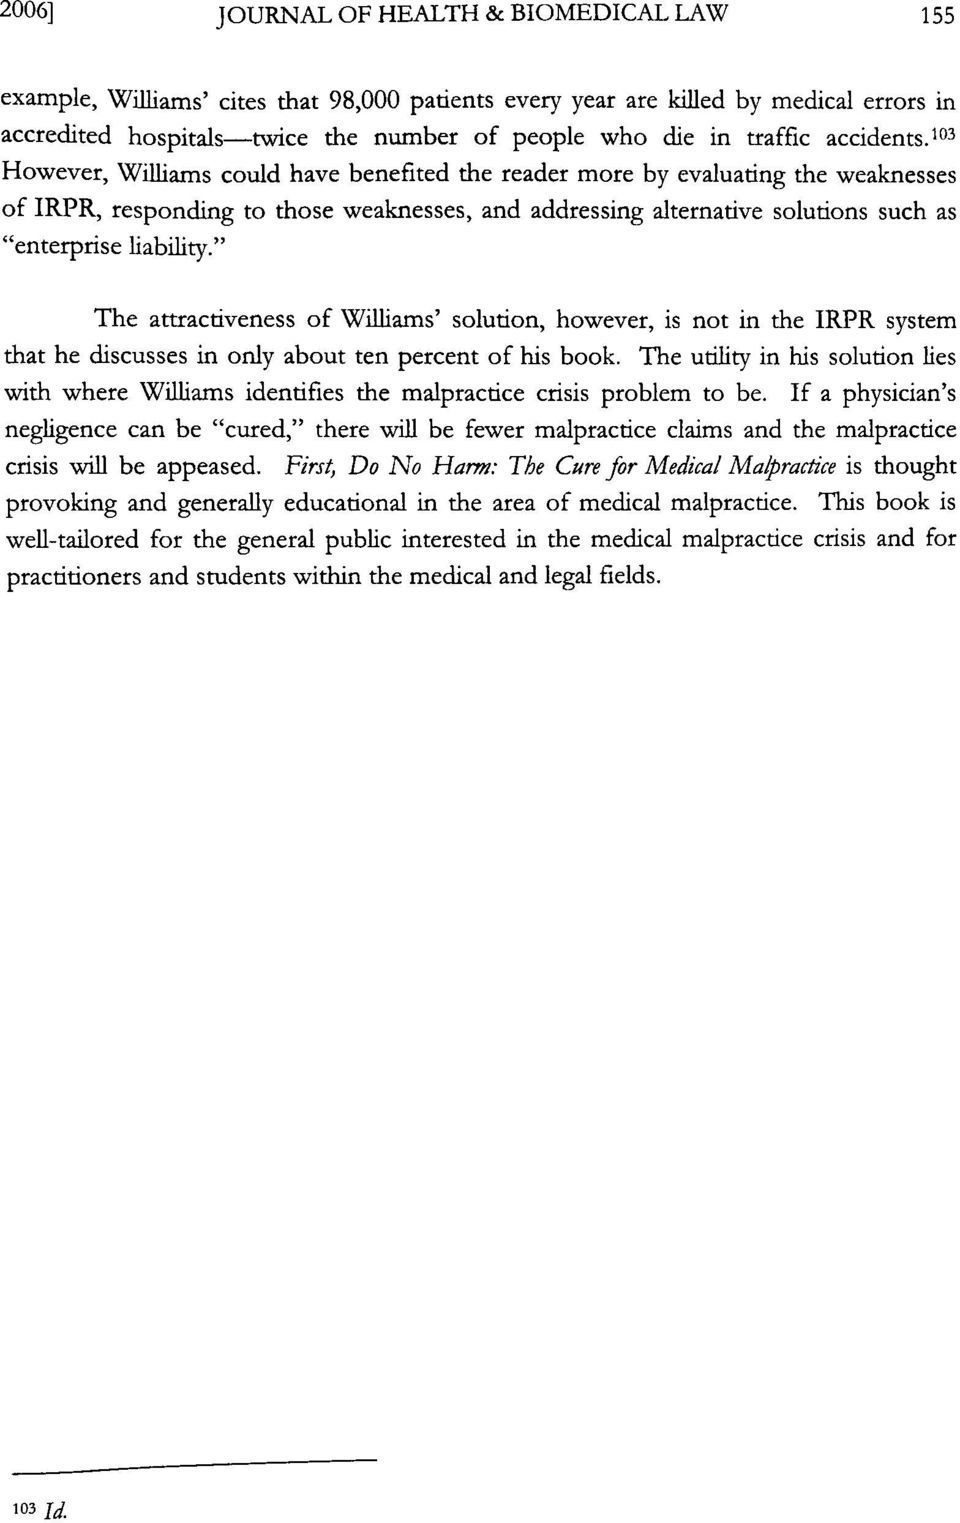 "103 However, Williams could have benefited the reader more by evaluating the weaknesses of IRPR, responding to those weaknesses, and addressing alternative solutions such as ""enterprise liability."